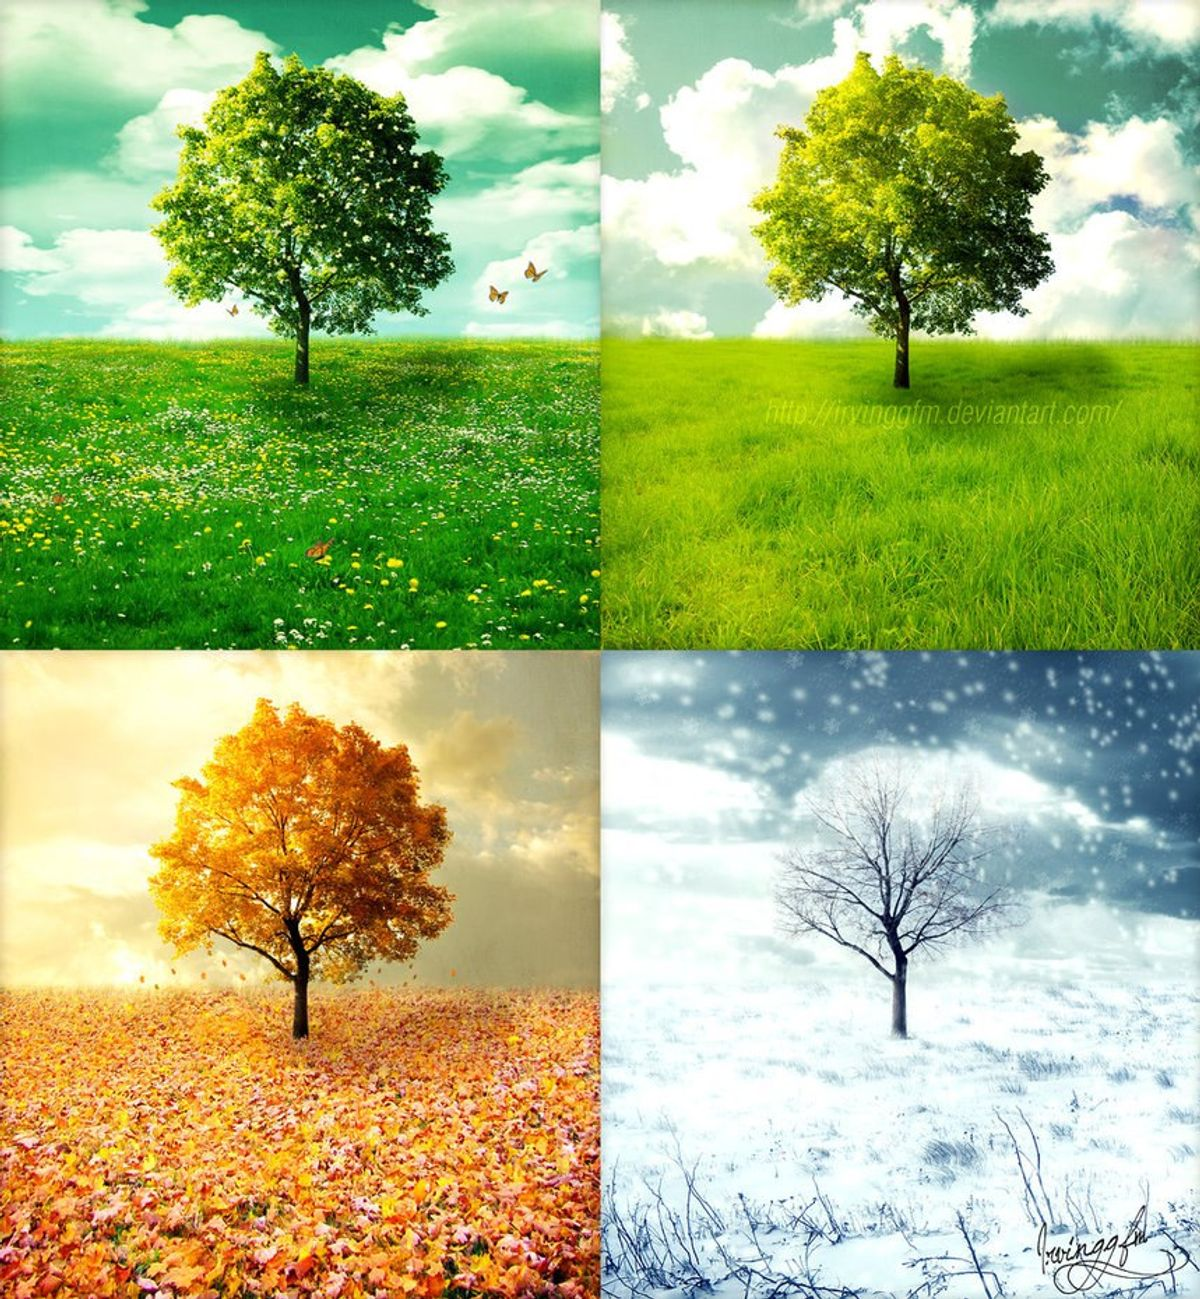 An Ode to the Seasons